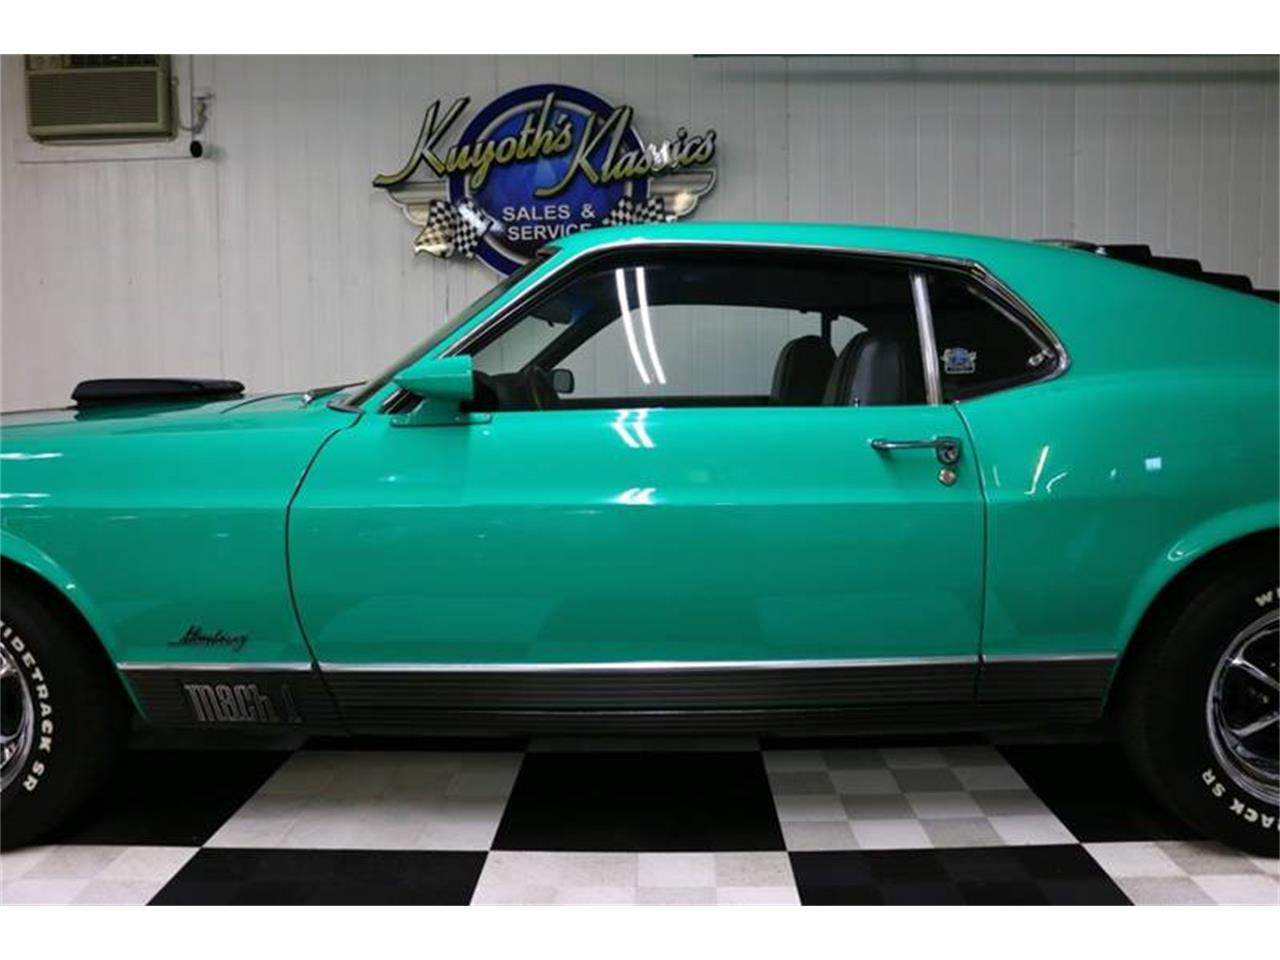 Large Picture of Classic 1970 Ford Mustang - $49,995.00 Offered by Kuyoth's Klassics - Q6NU